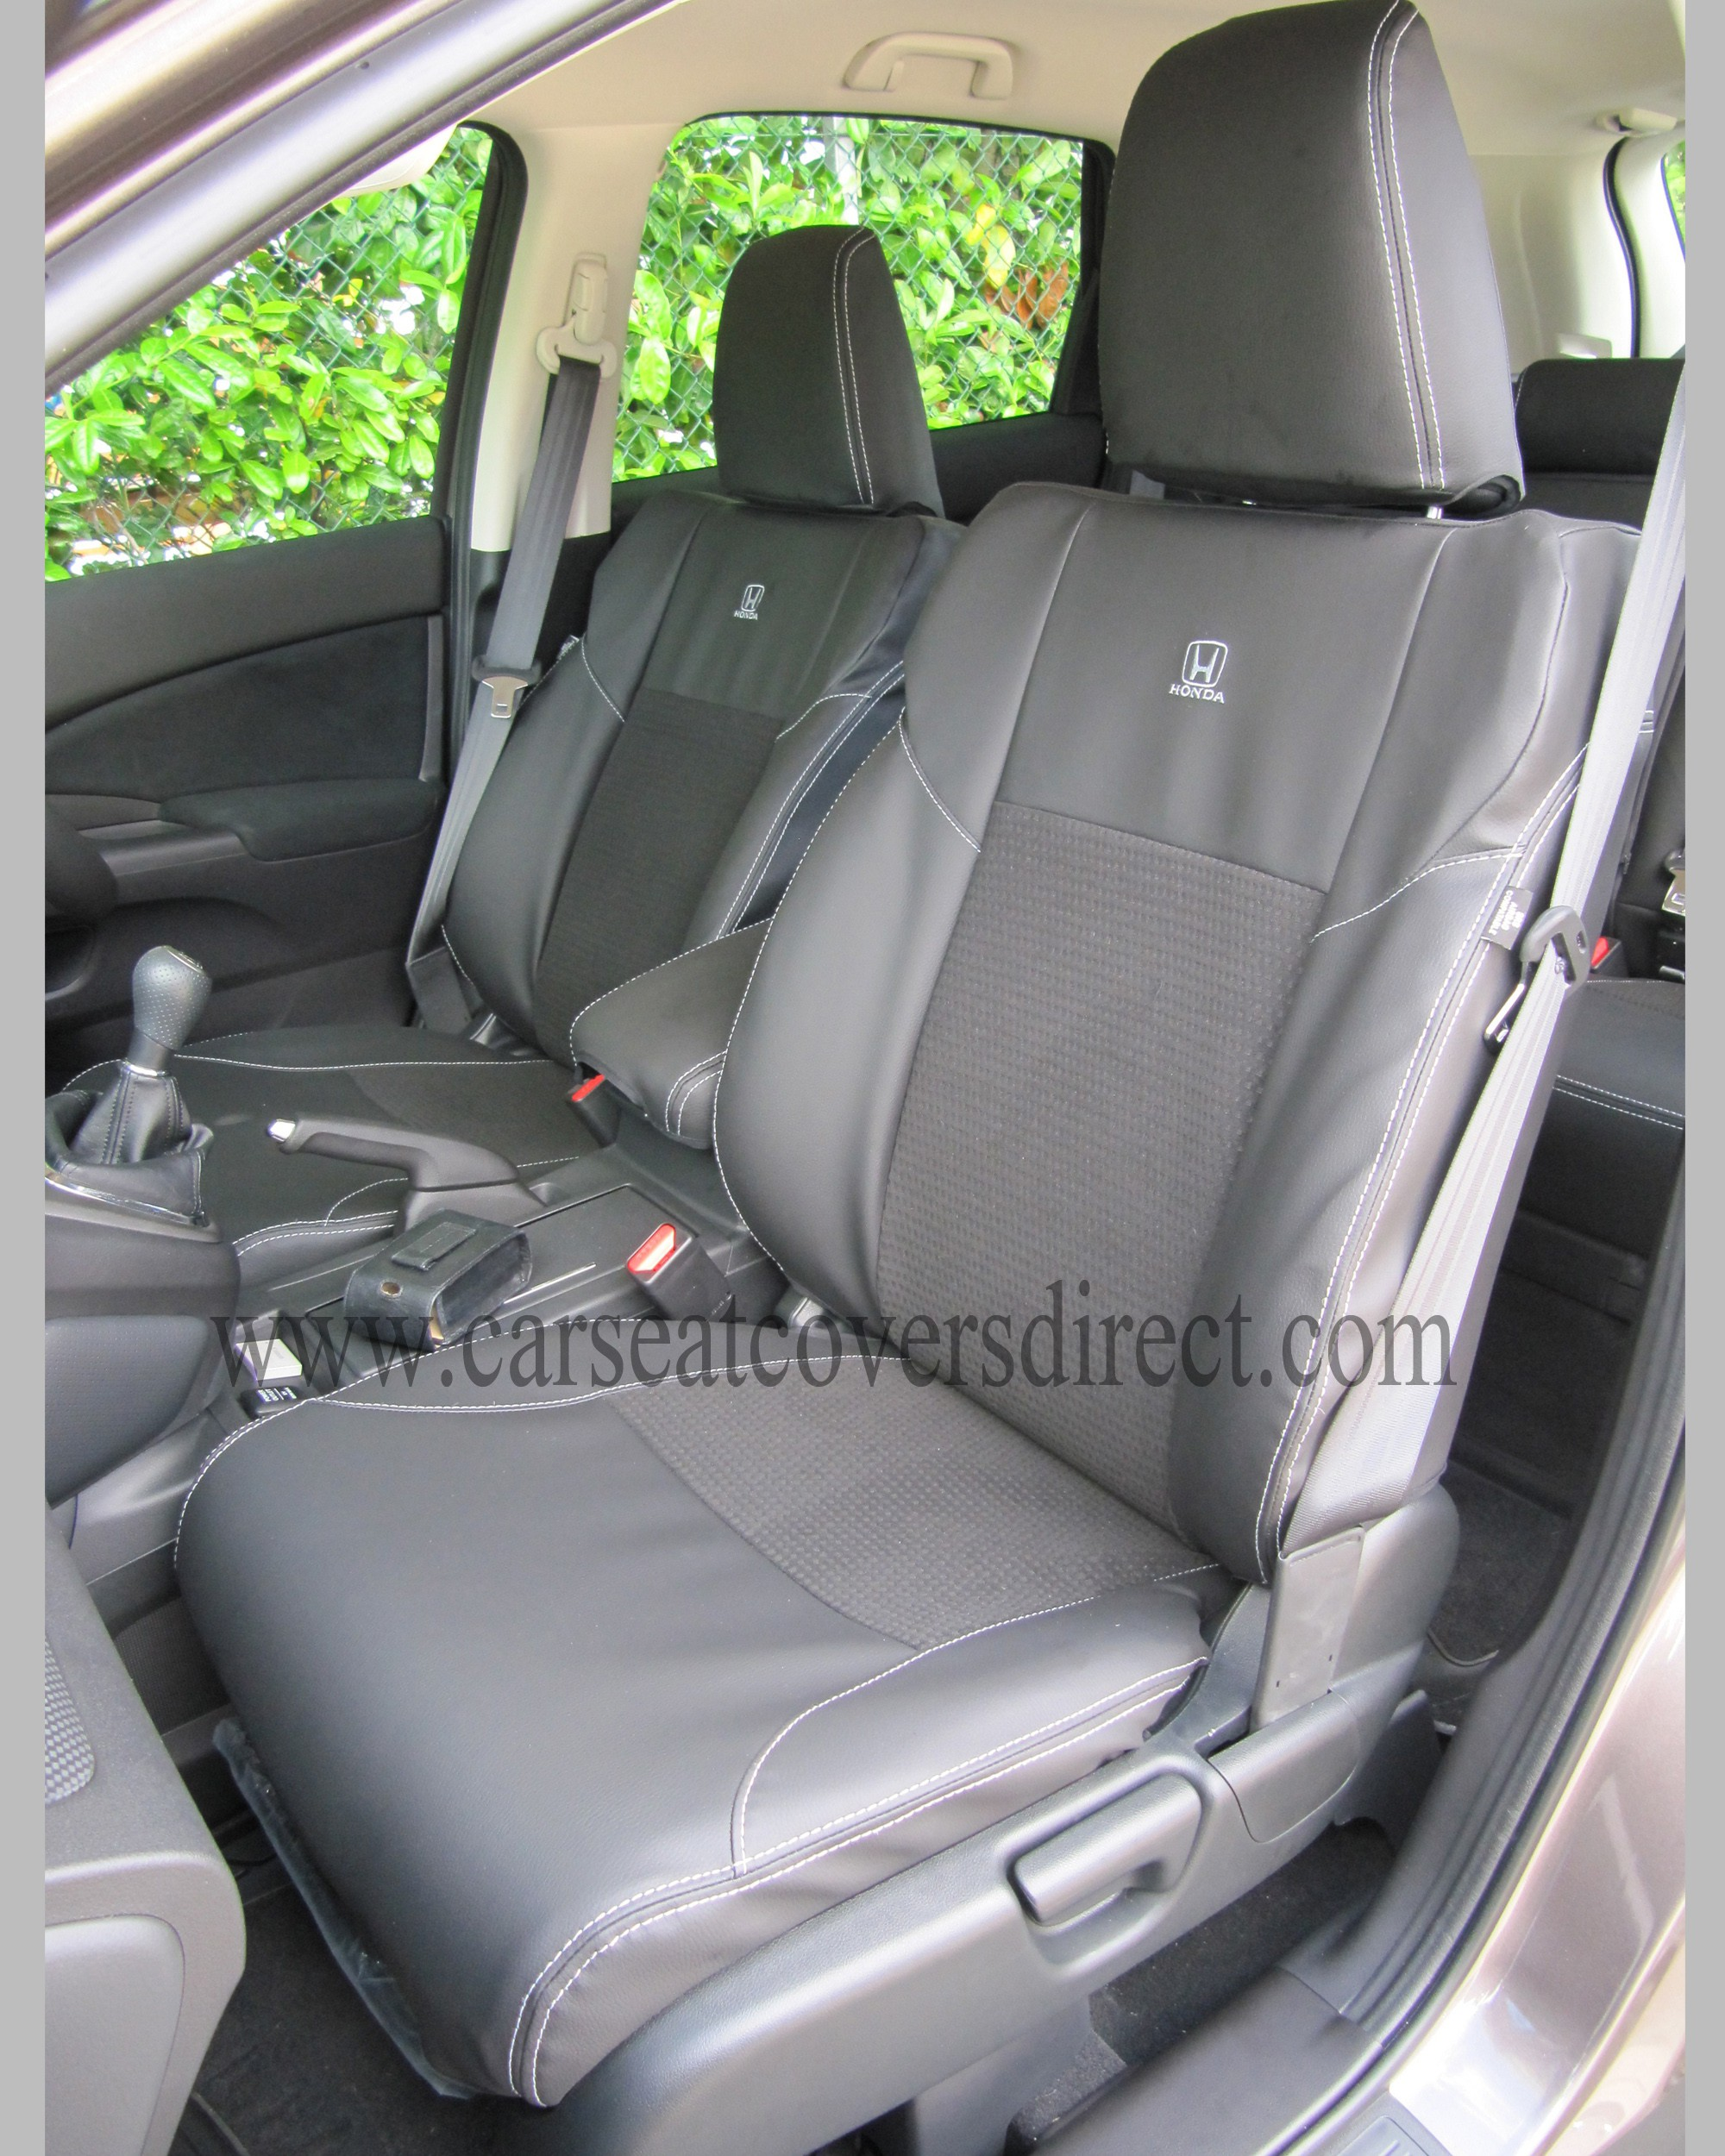 honda crv 4th gen seat covers car seat covers direct tailored to your choice. Black Bedroom Furniture Sets. Home Design Ideas